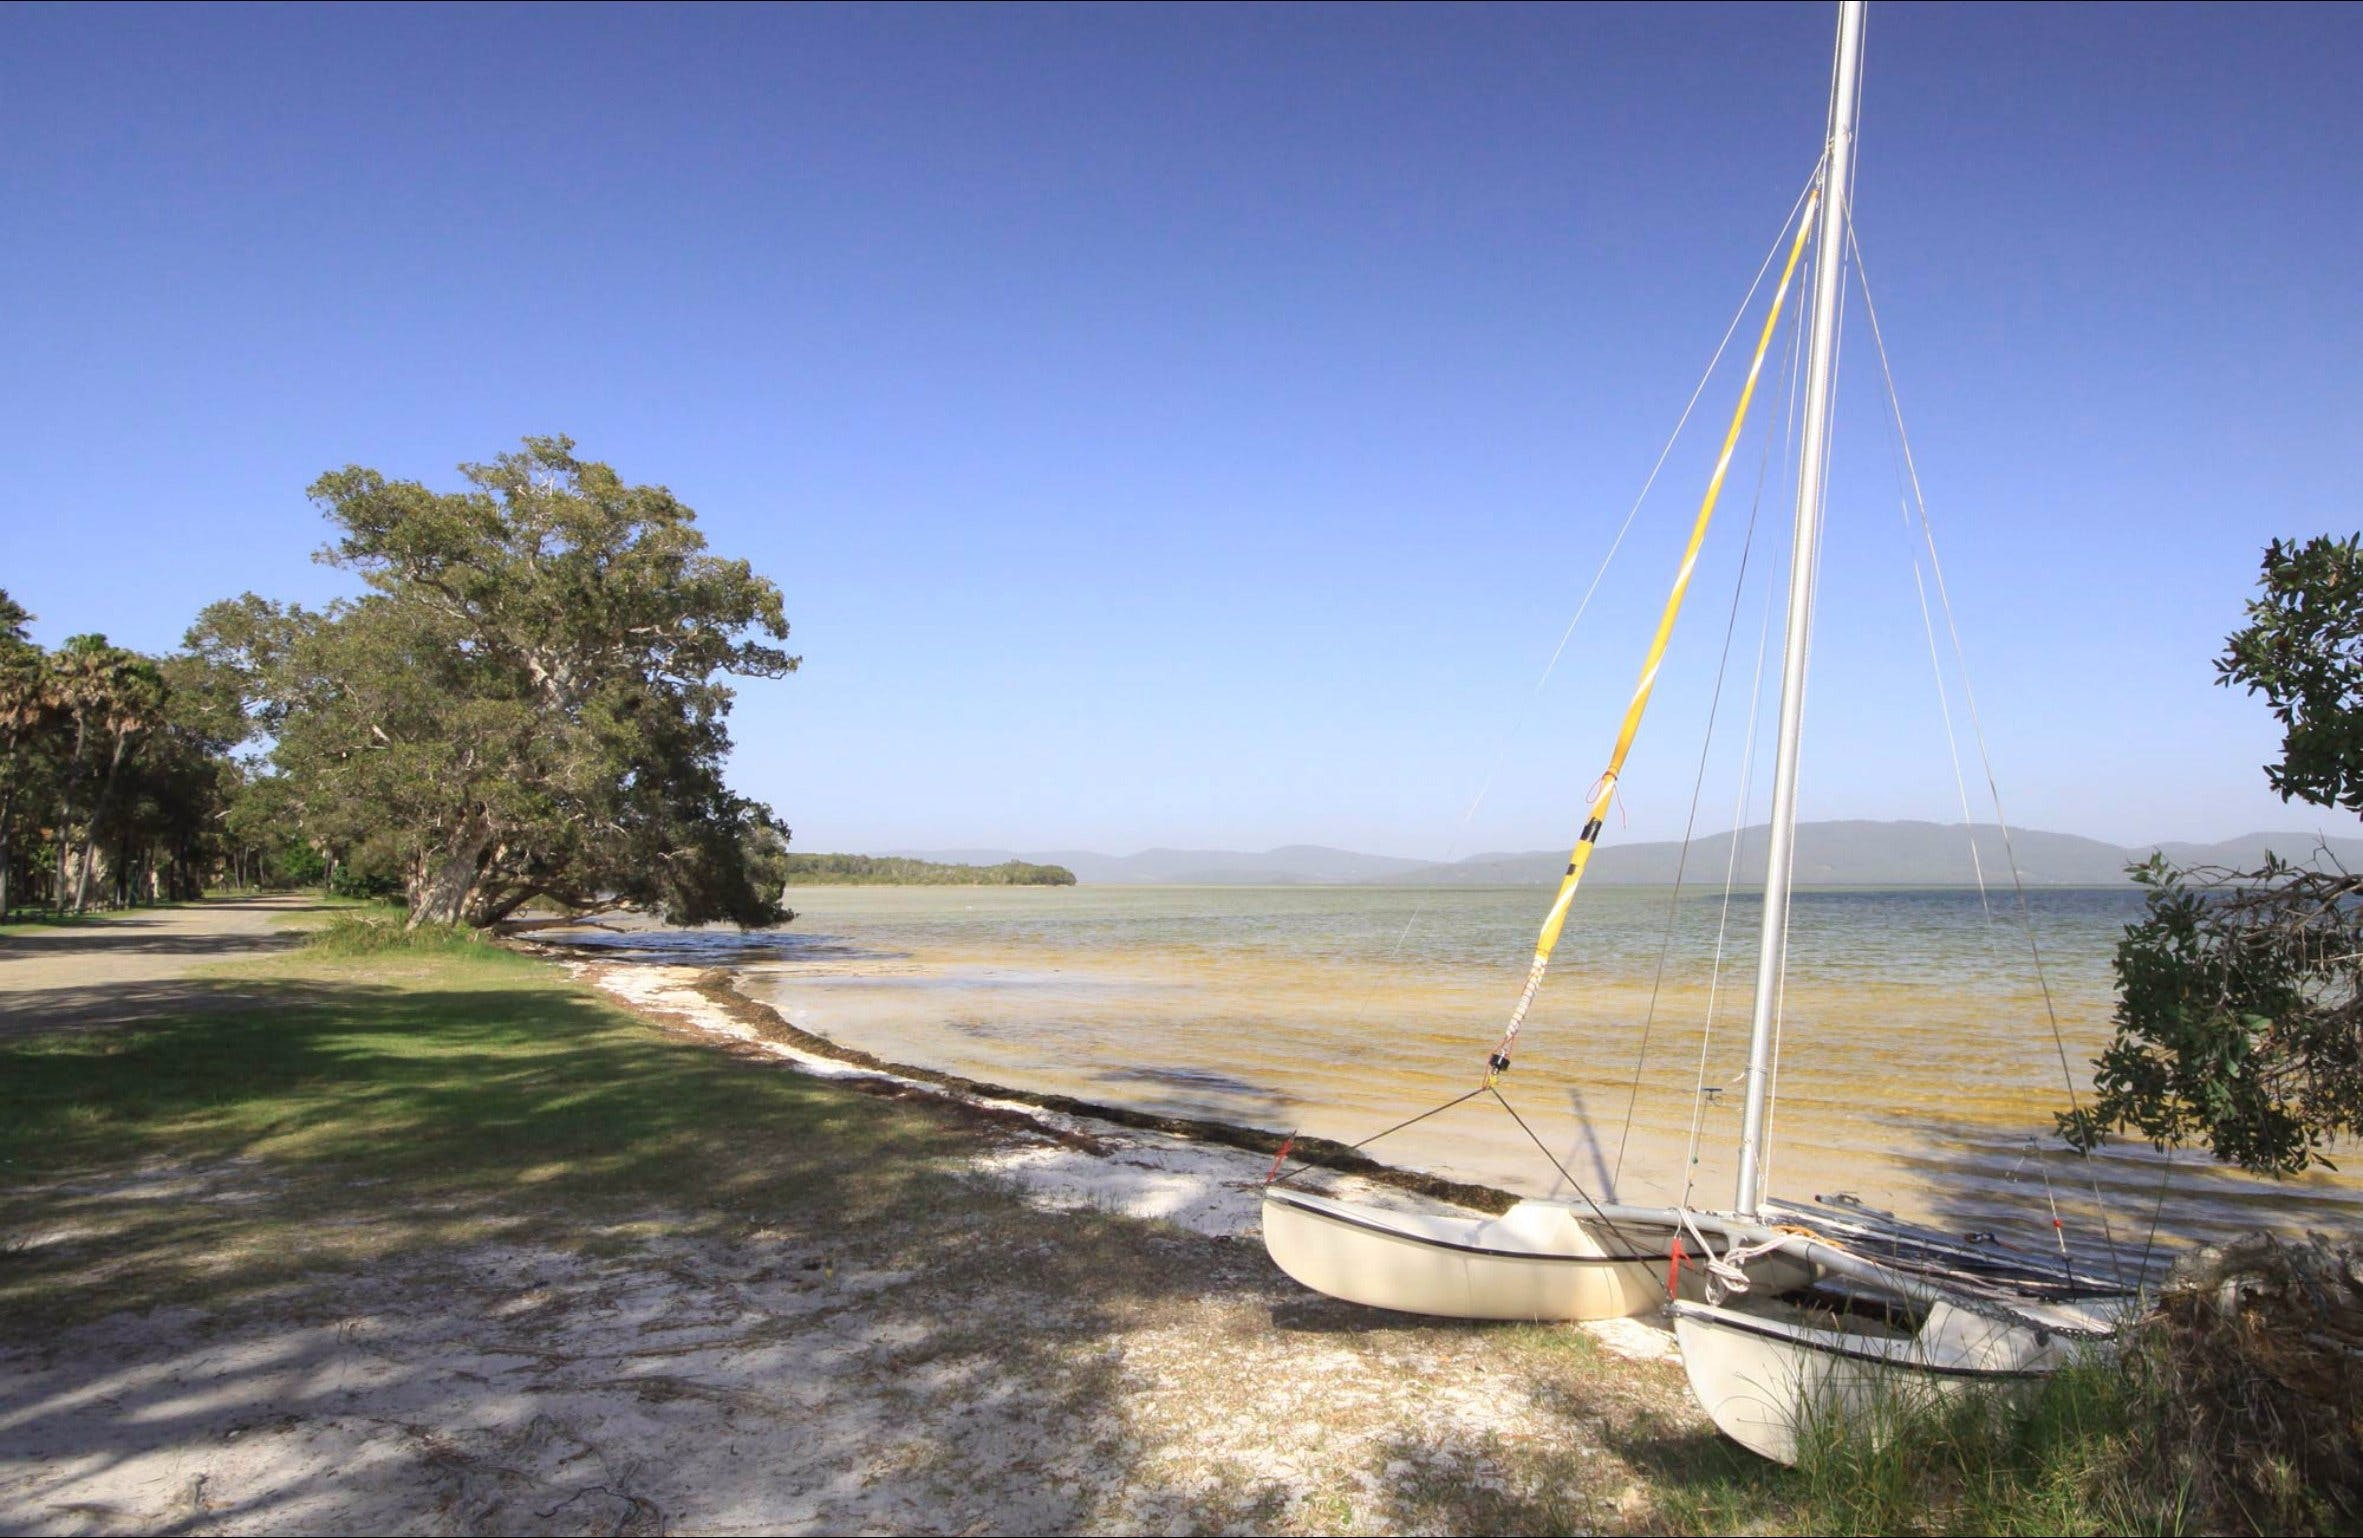 Sailing Club picnic area - Accommodation Tasmania